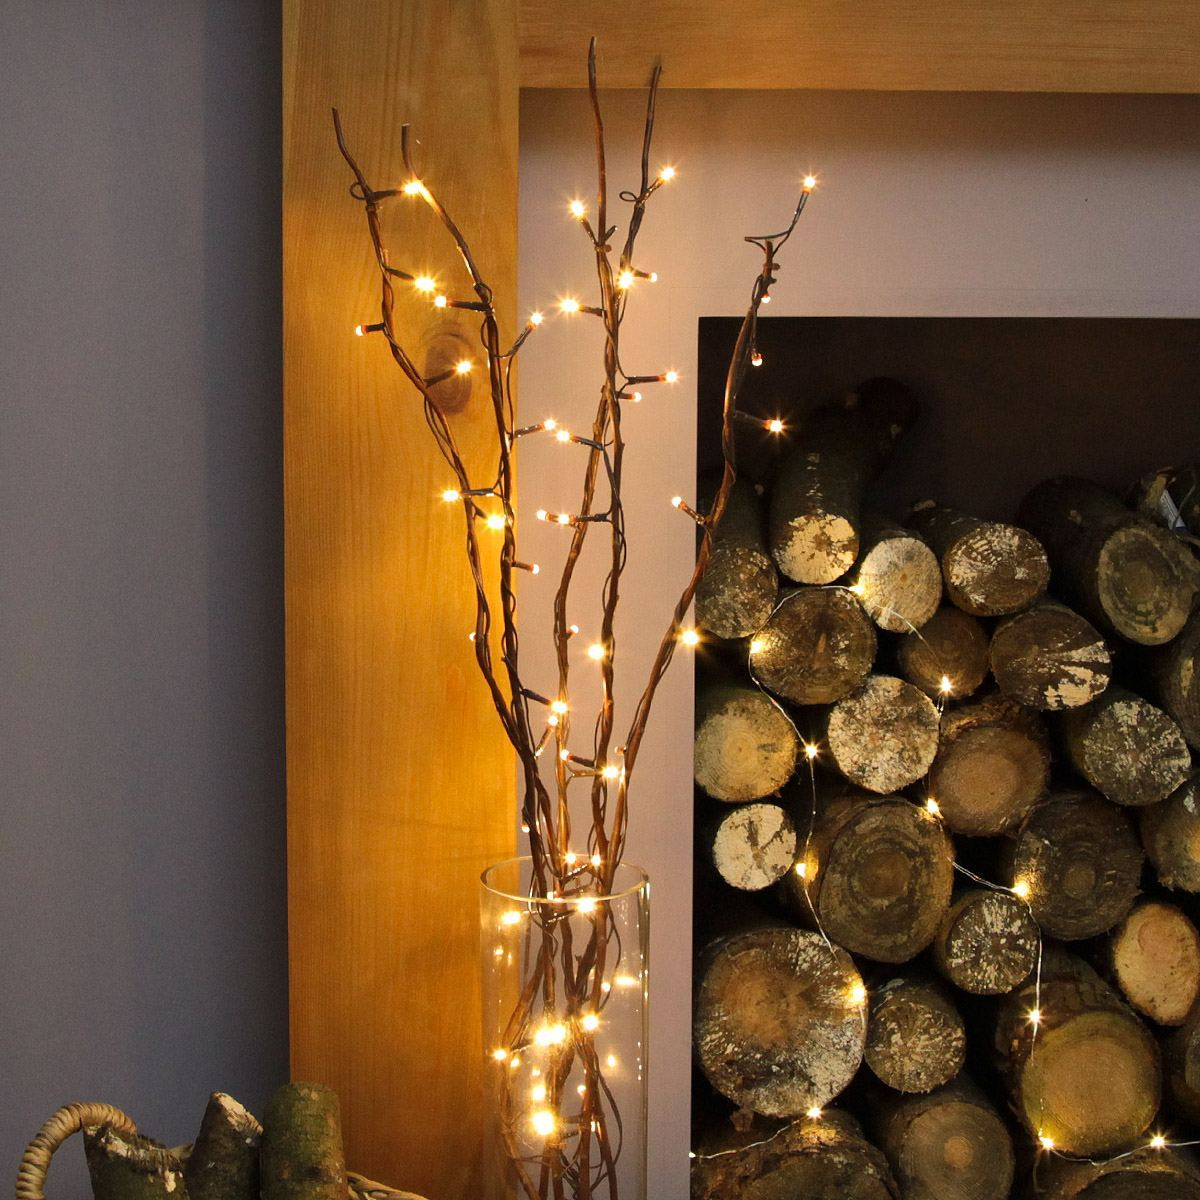 5 decorative willow twig lights 50 warm white leds 87cm for Twig decorations home